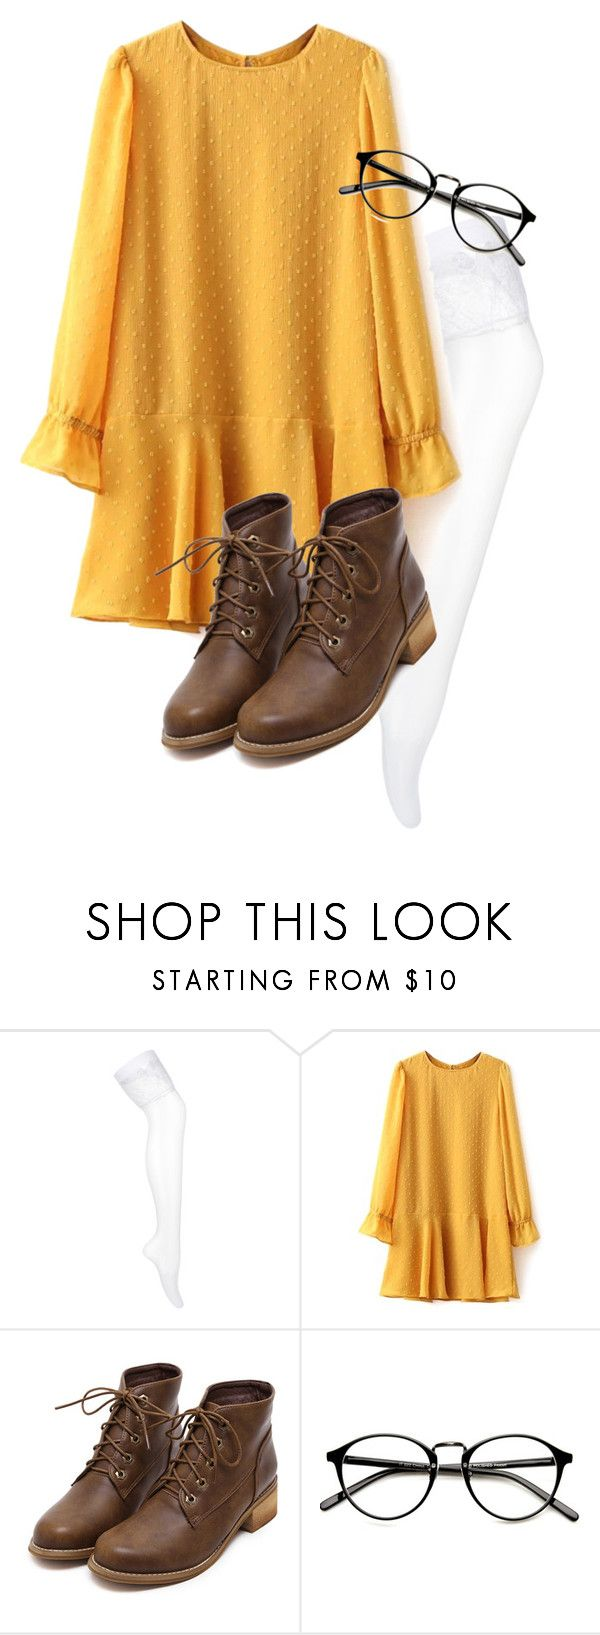 """""""Dodie Clark inspired"""" by lukeisalibero ❤ liked on Polyvore"""